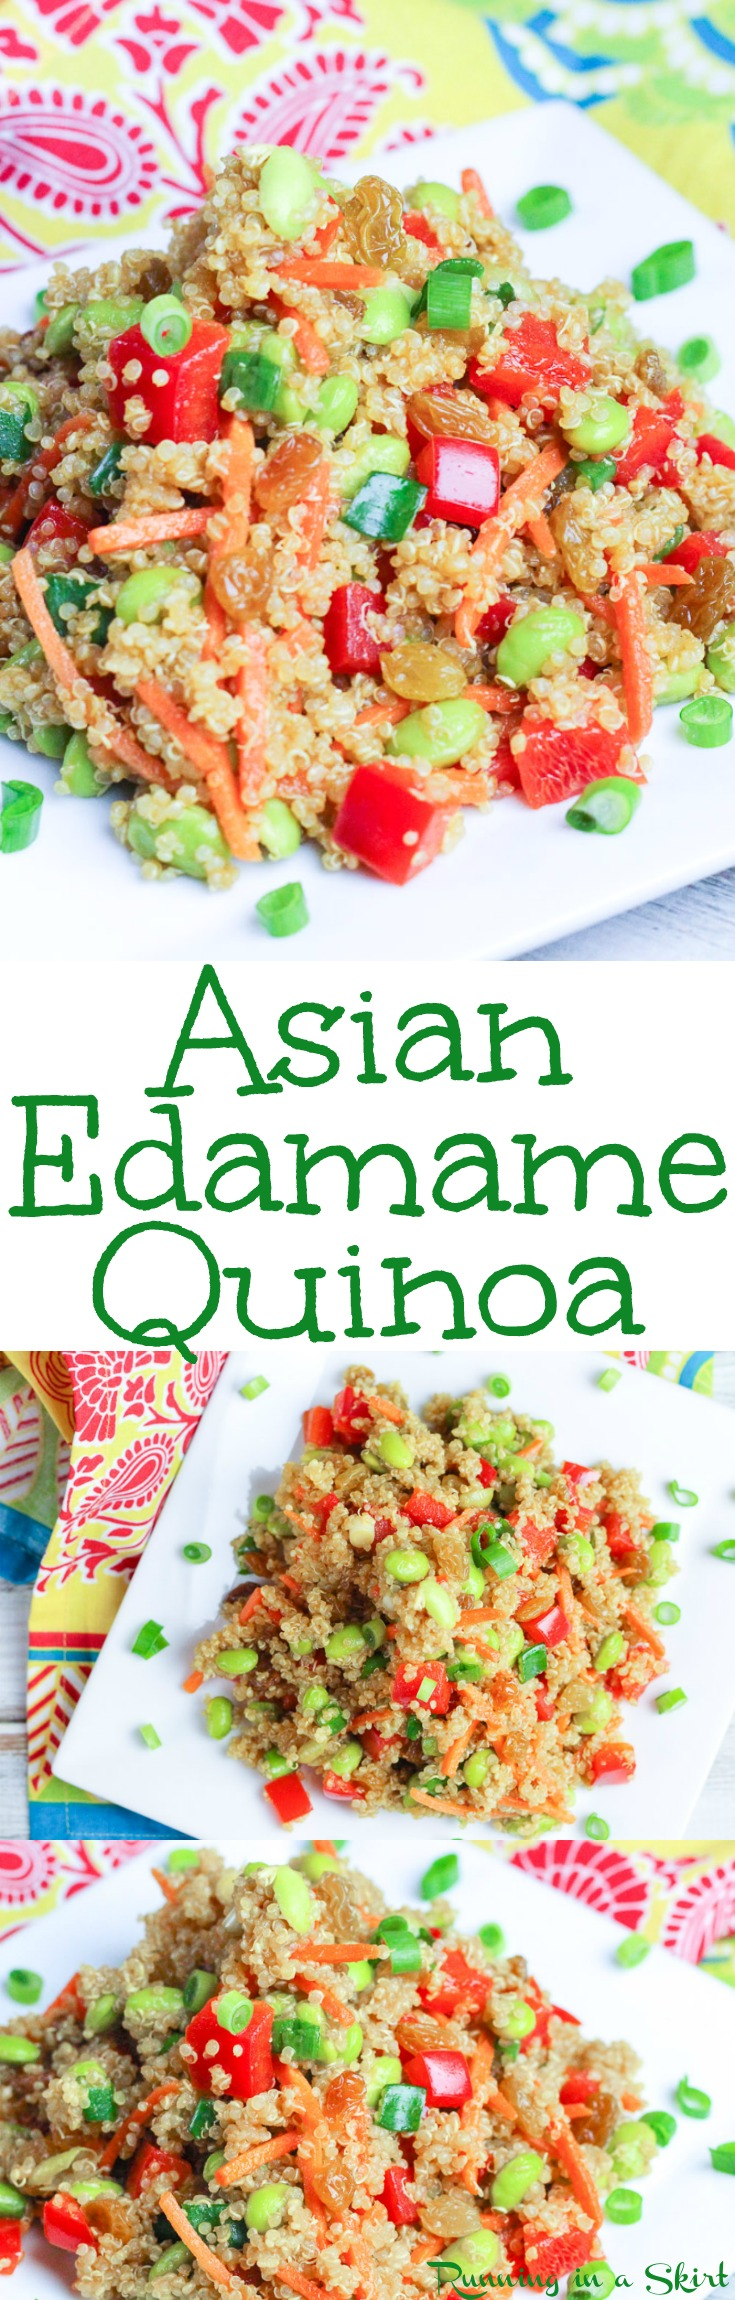 Healthy Asian Quinoa Salad recipe with Edamame - this high protein vegetarian and vegan dish is easy to make! It uses sesame oil, soy sauce and honey for a clean eating dressing. Packed with veggies making it the perfect food for dinners, lunches or appetizers. / Running in a Skirt via @juliewunder